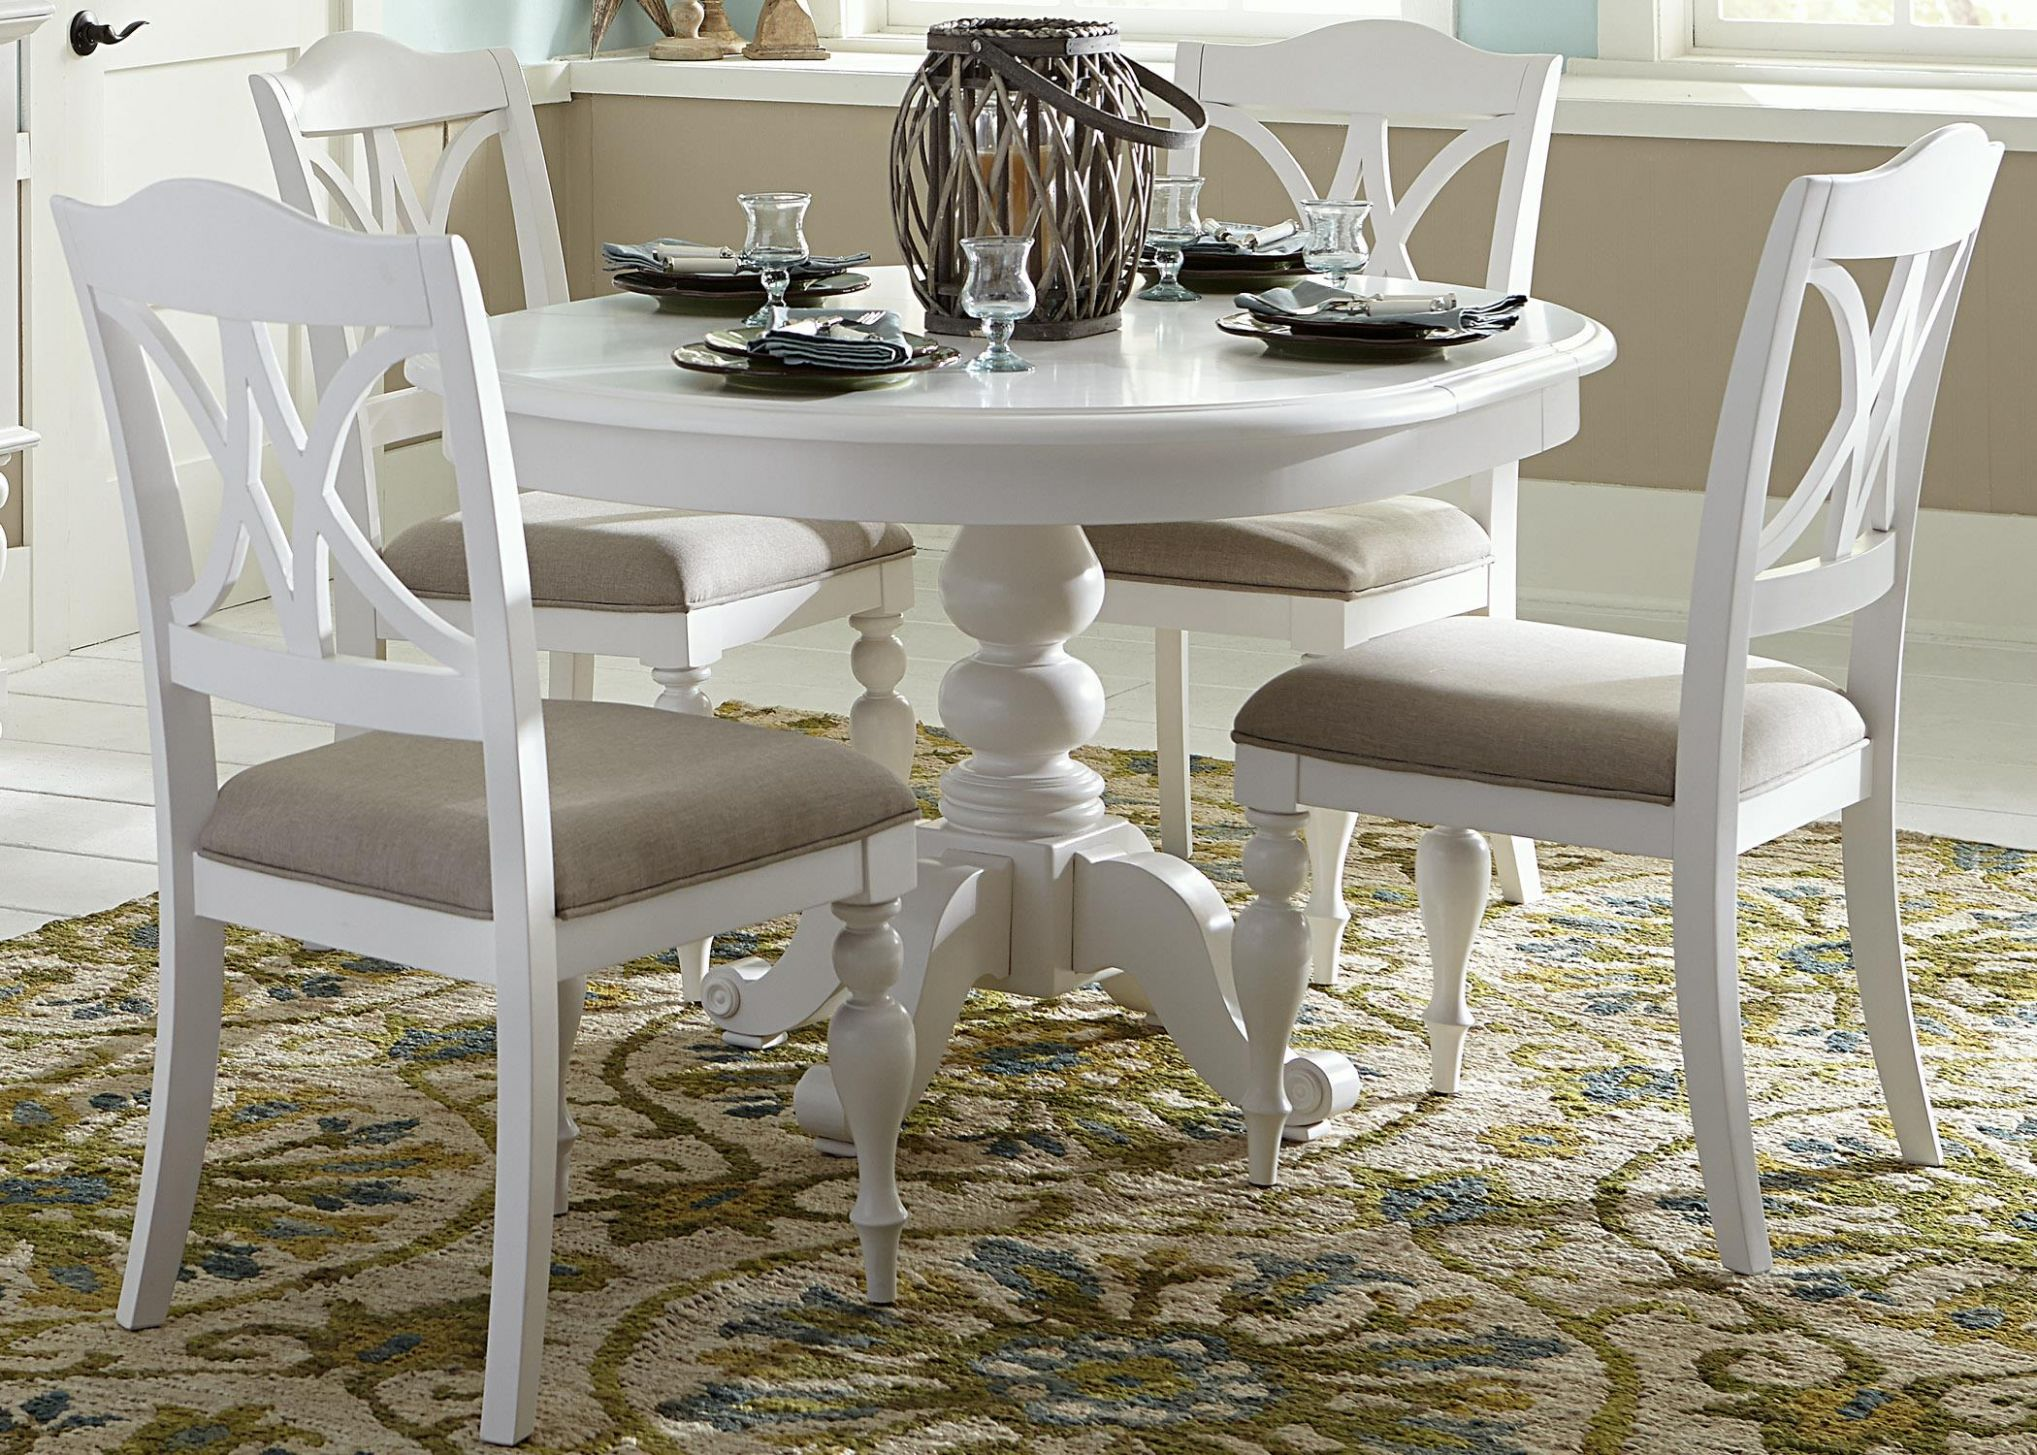 Bailey 12 Piece Round Table Set - dining room ideas with round table